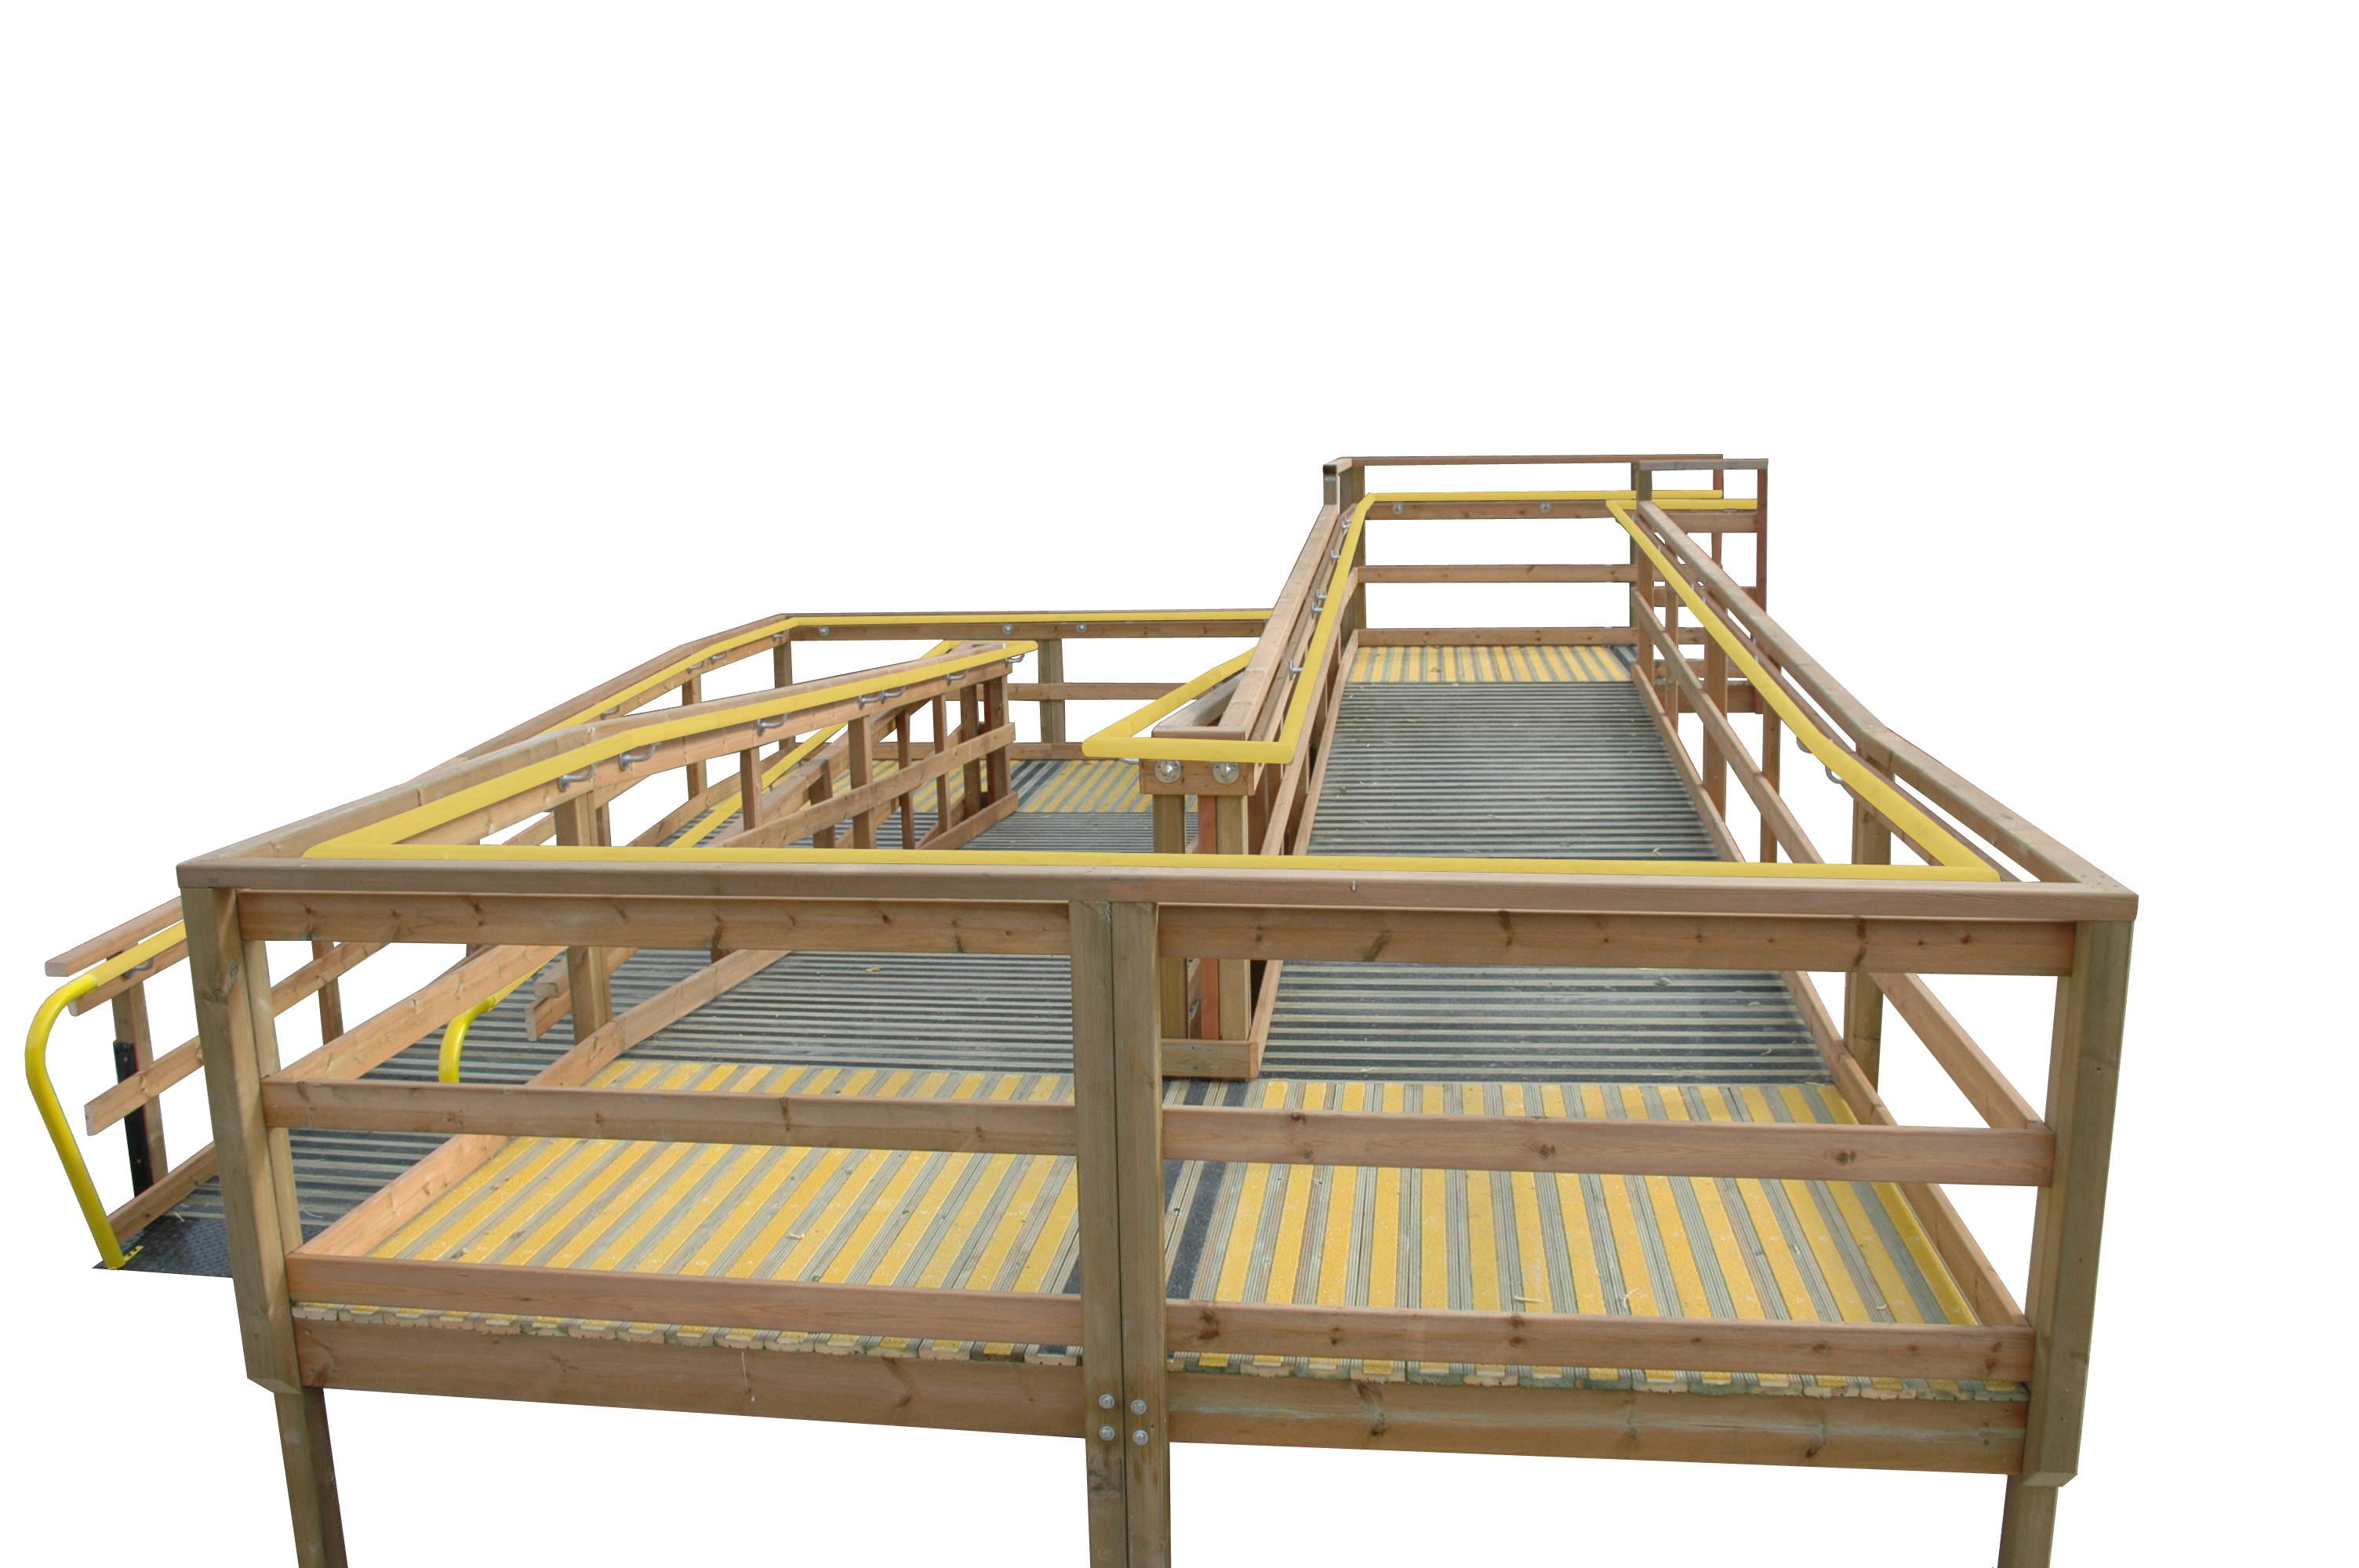 Aggredeck® steps and ramps decking full ramp